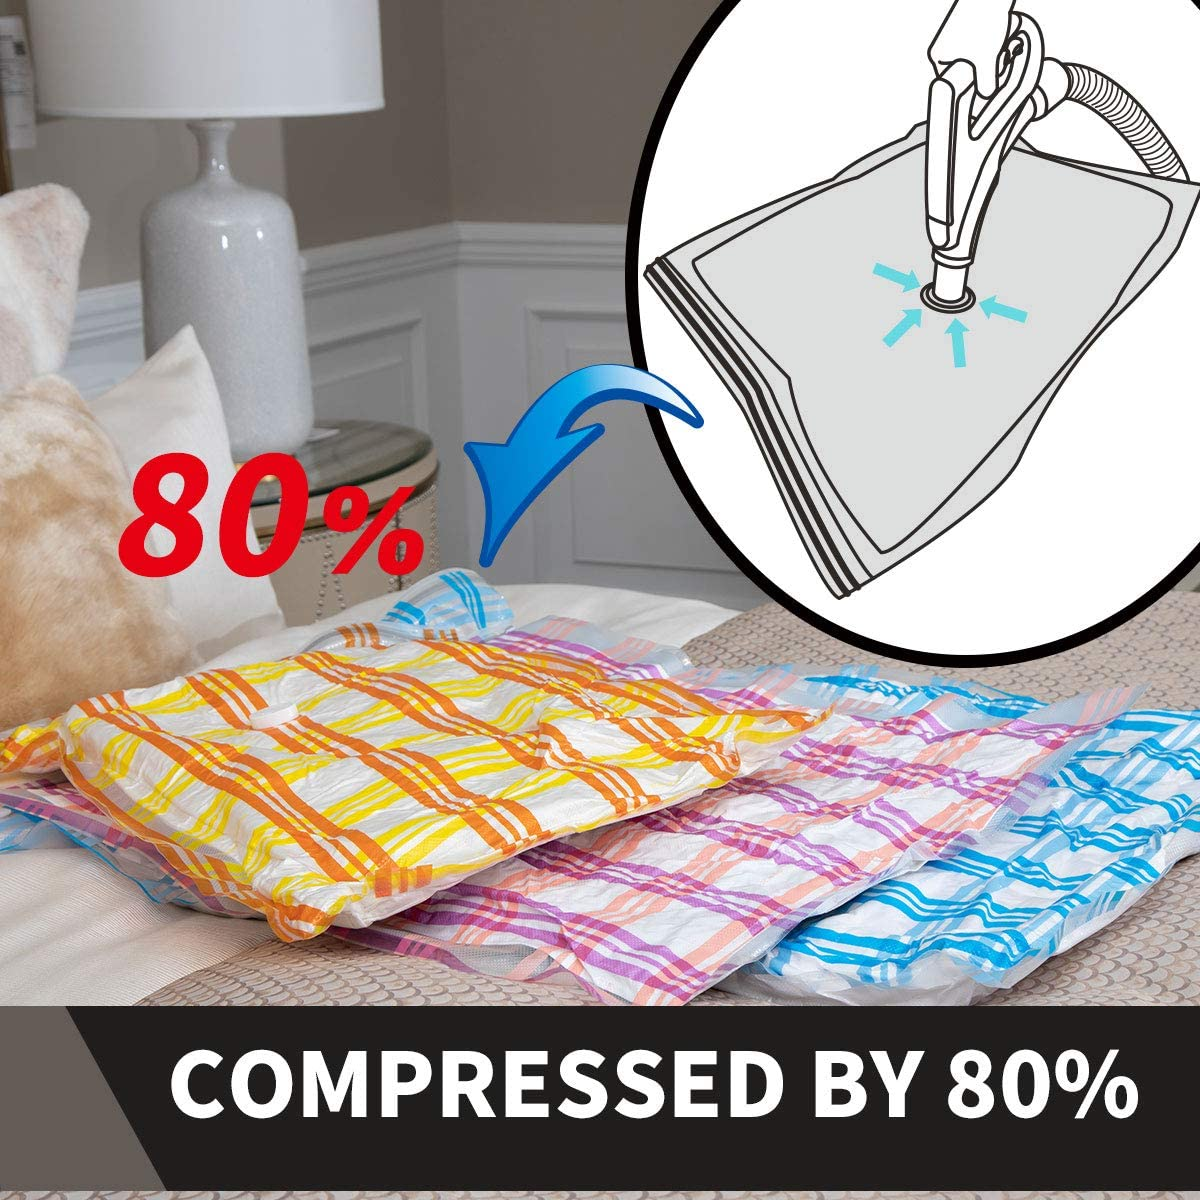 3 Medium+3Large +3Jumbo+3Rollup Bags Storage Master Space Saver Bags for Travel and Home Reusable Vacuum Storage Bags Save 80/% More Storage Space Work with Vacuum Cleaner Travel Hand Pump